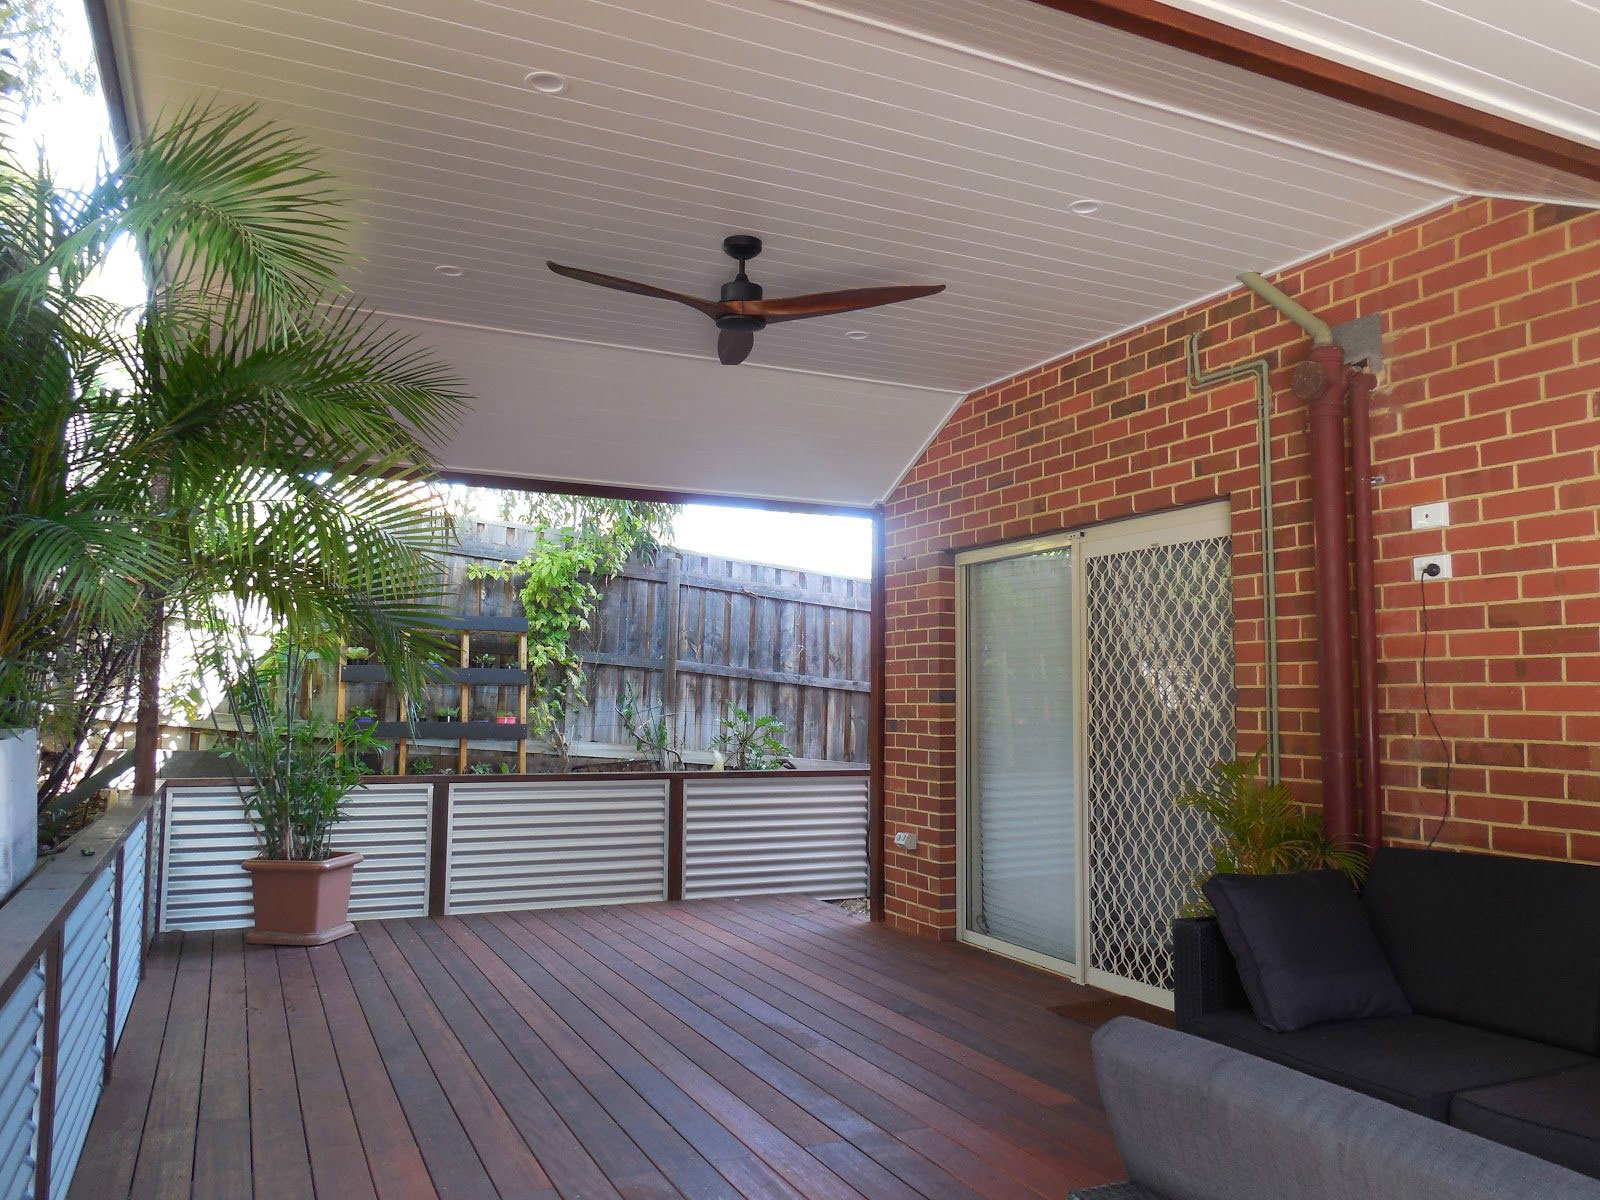 Decked & Fenced Patio With Ceiling Fan, Attached To A Brick Home.